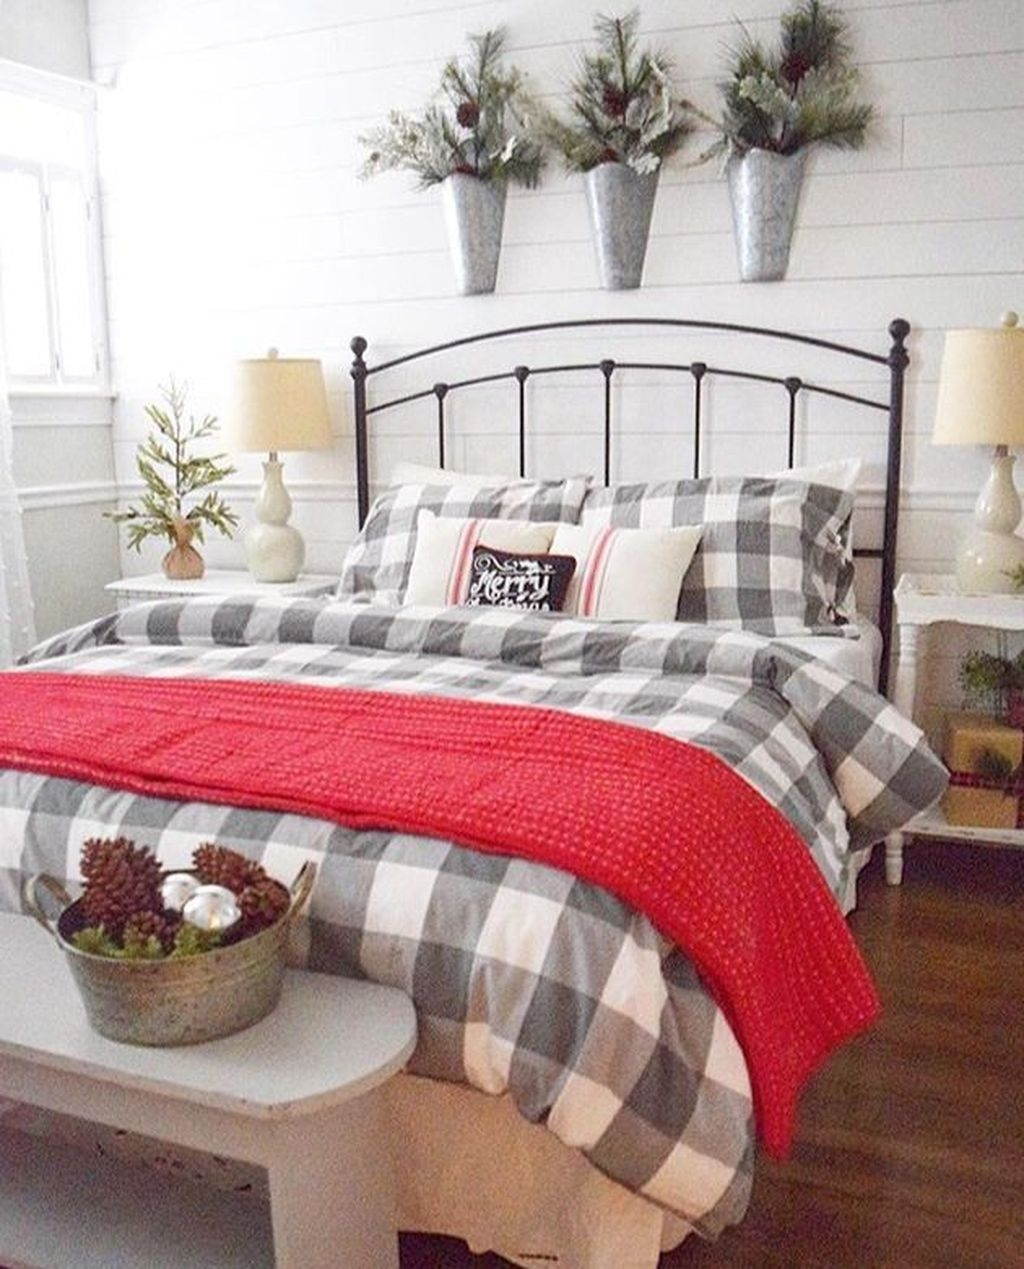 Minimalist Farmhouse Christmas Bedroom Decoration Ideas16